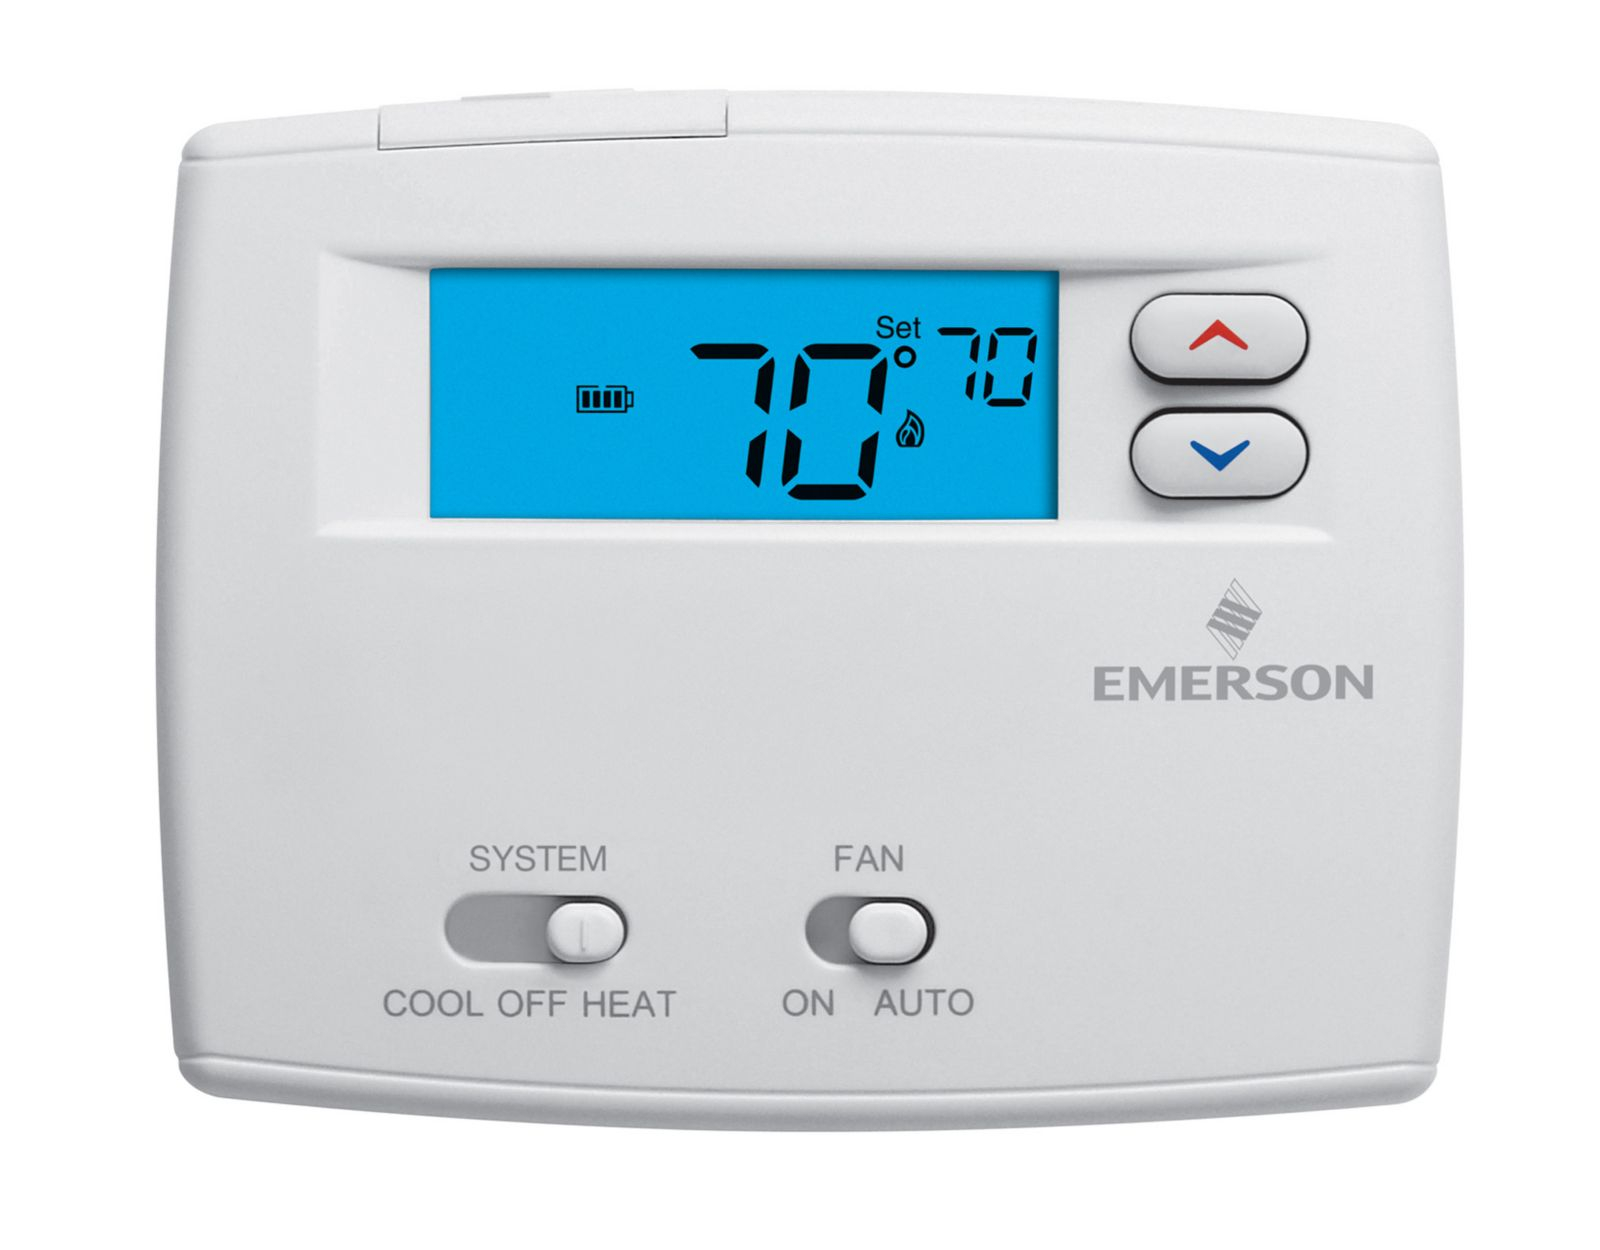 emerson digital thermostat wiring diagram Collection-Tools and Links 2-p